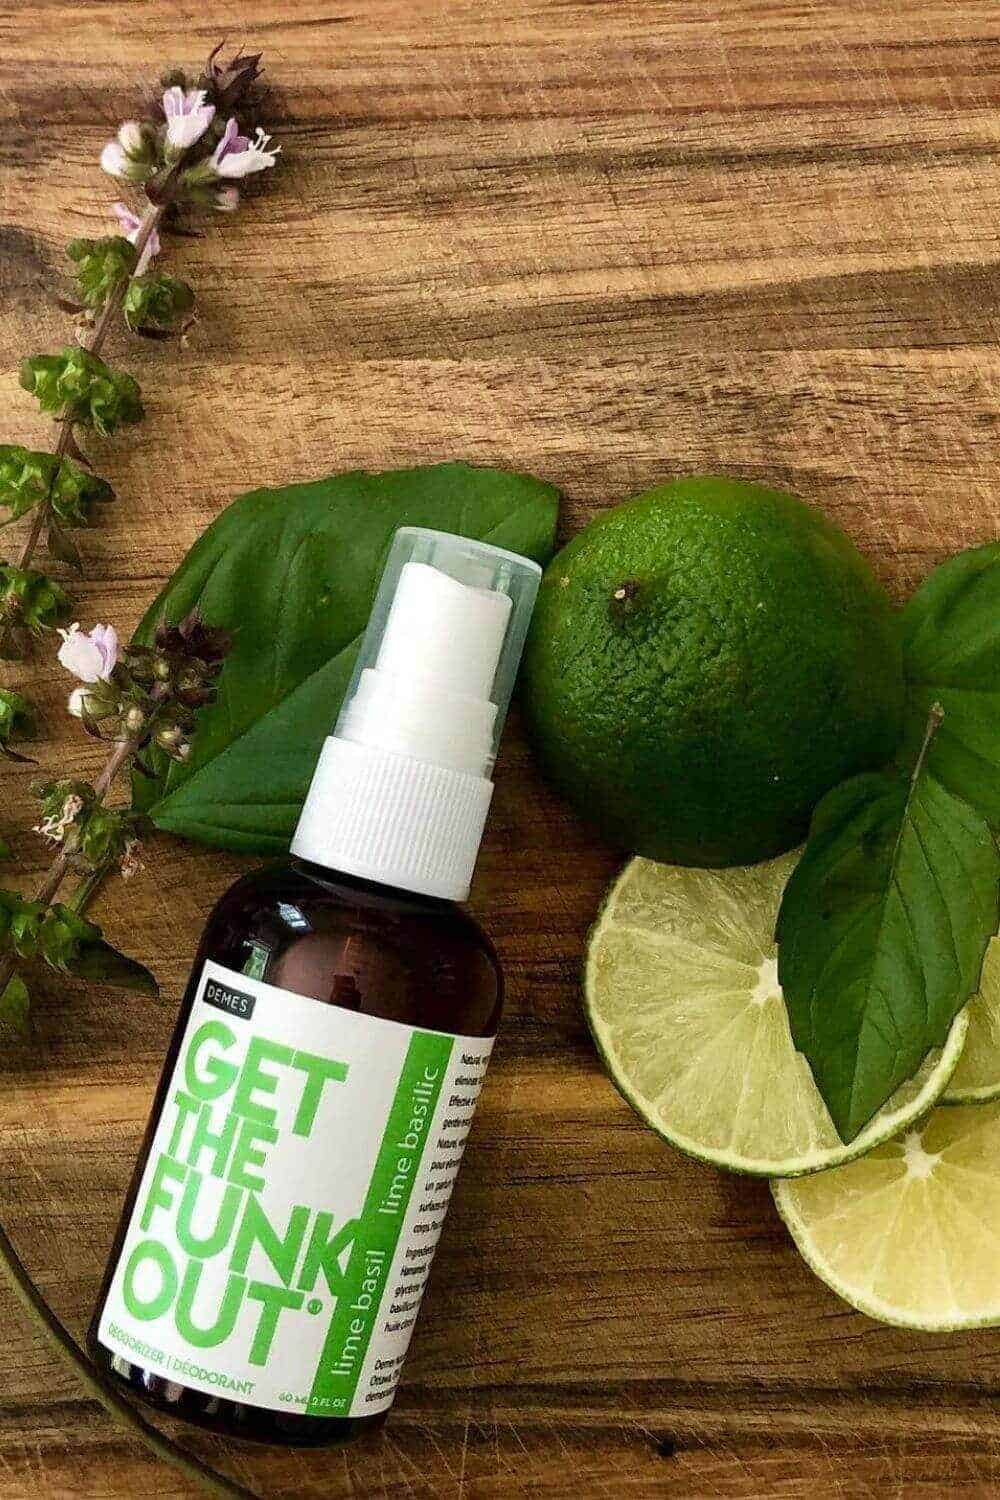 We're meant to sweat. So finding the best natural and environmentally friendly deodorant, one that really works and is actually natural is pretty important! Here's our list... Image by DEMES #environmentallfriendlydeodorant #sustainablejungle